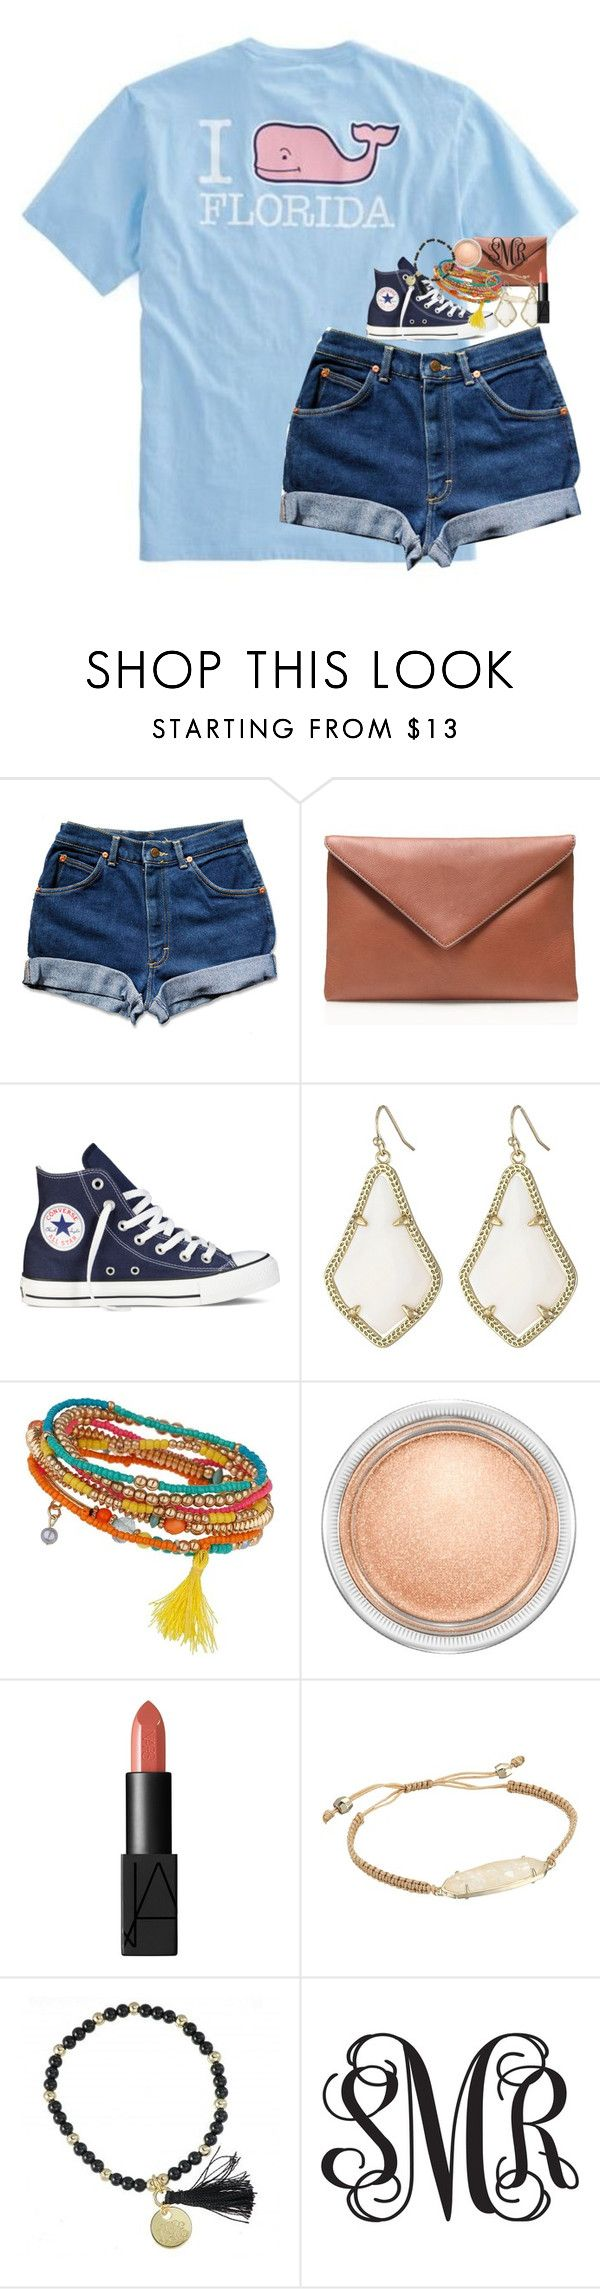 """""""this shirt would be perfect for the beach ☀️"""" by classynsouthern ❤ liked on Polyvore featuring Vineyard Vines, J.Crew, Converse, Kendra Scott, Miss Selfridge, MAC Cosmetics and NARS Cosmetics"""